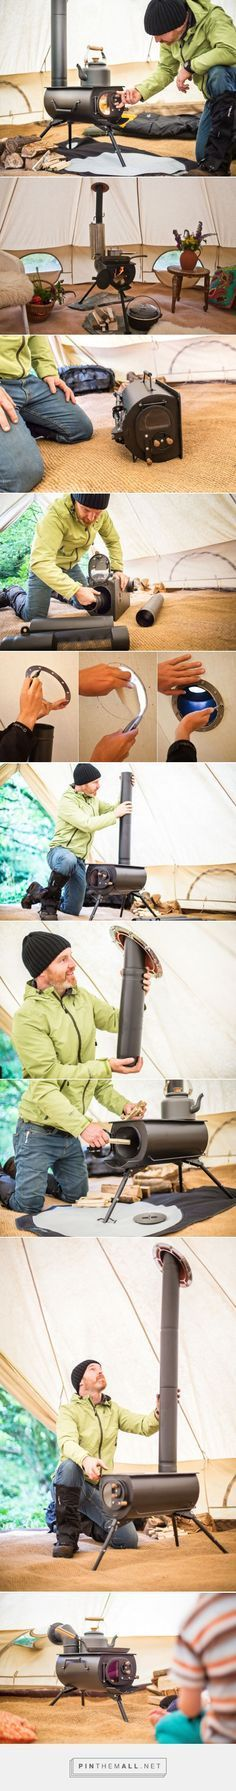 Frontier Plus – Portable Woodburning Stove Can Be Installed in Tents, Teepees, or Small Cabins   Tuvie